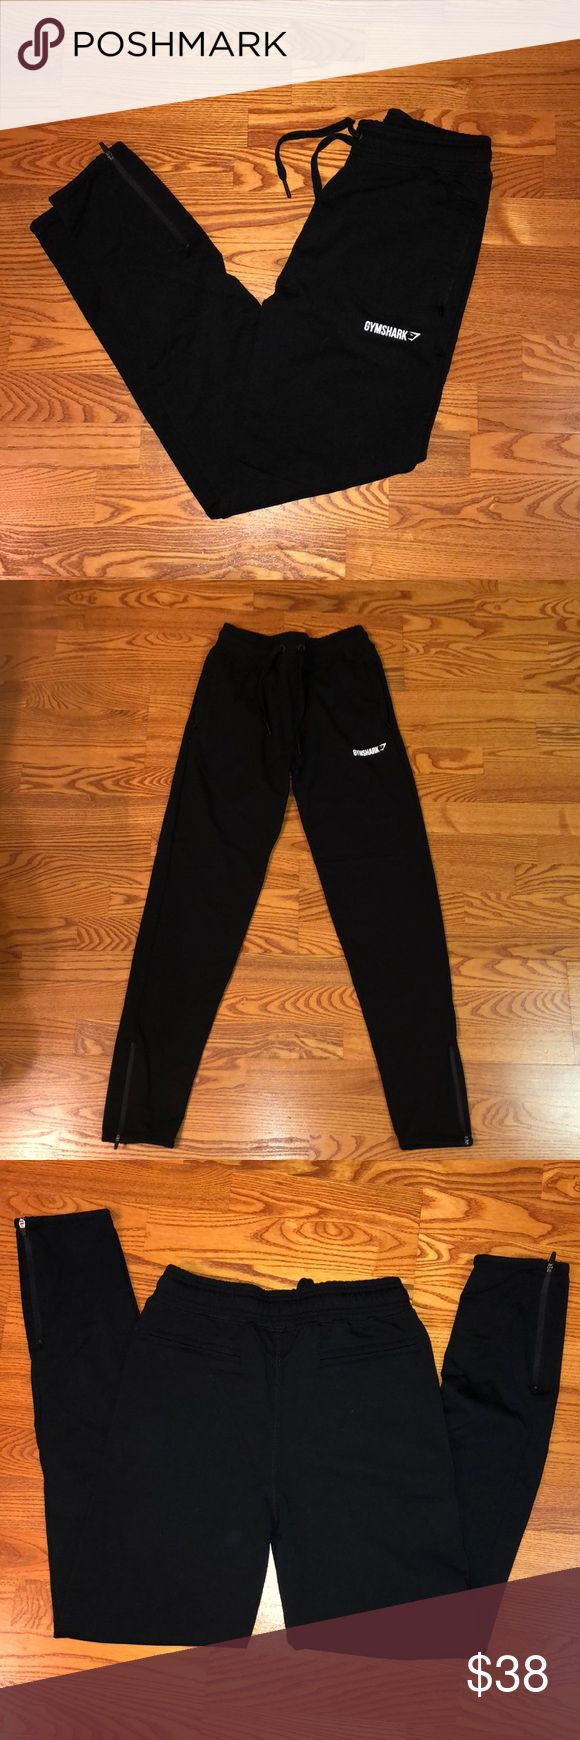 GymShark joggers - never been warn I bought two pairs of joggers (this and the high waisted ones I'm selling) I'm 4'10 and too short. They fit weird because of my height but it cost more than half of what I paid to mail them back for a refund. Figured I'd keep them and maybe one day wear them but I won't. GymShark Pants Track Pants & Joggers